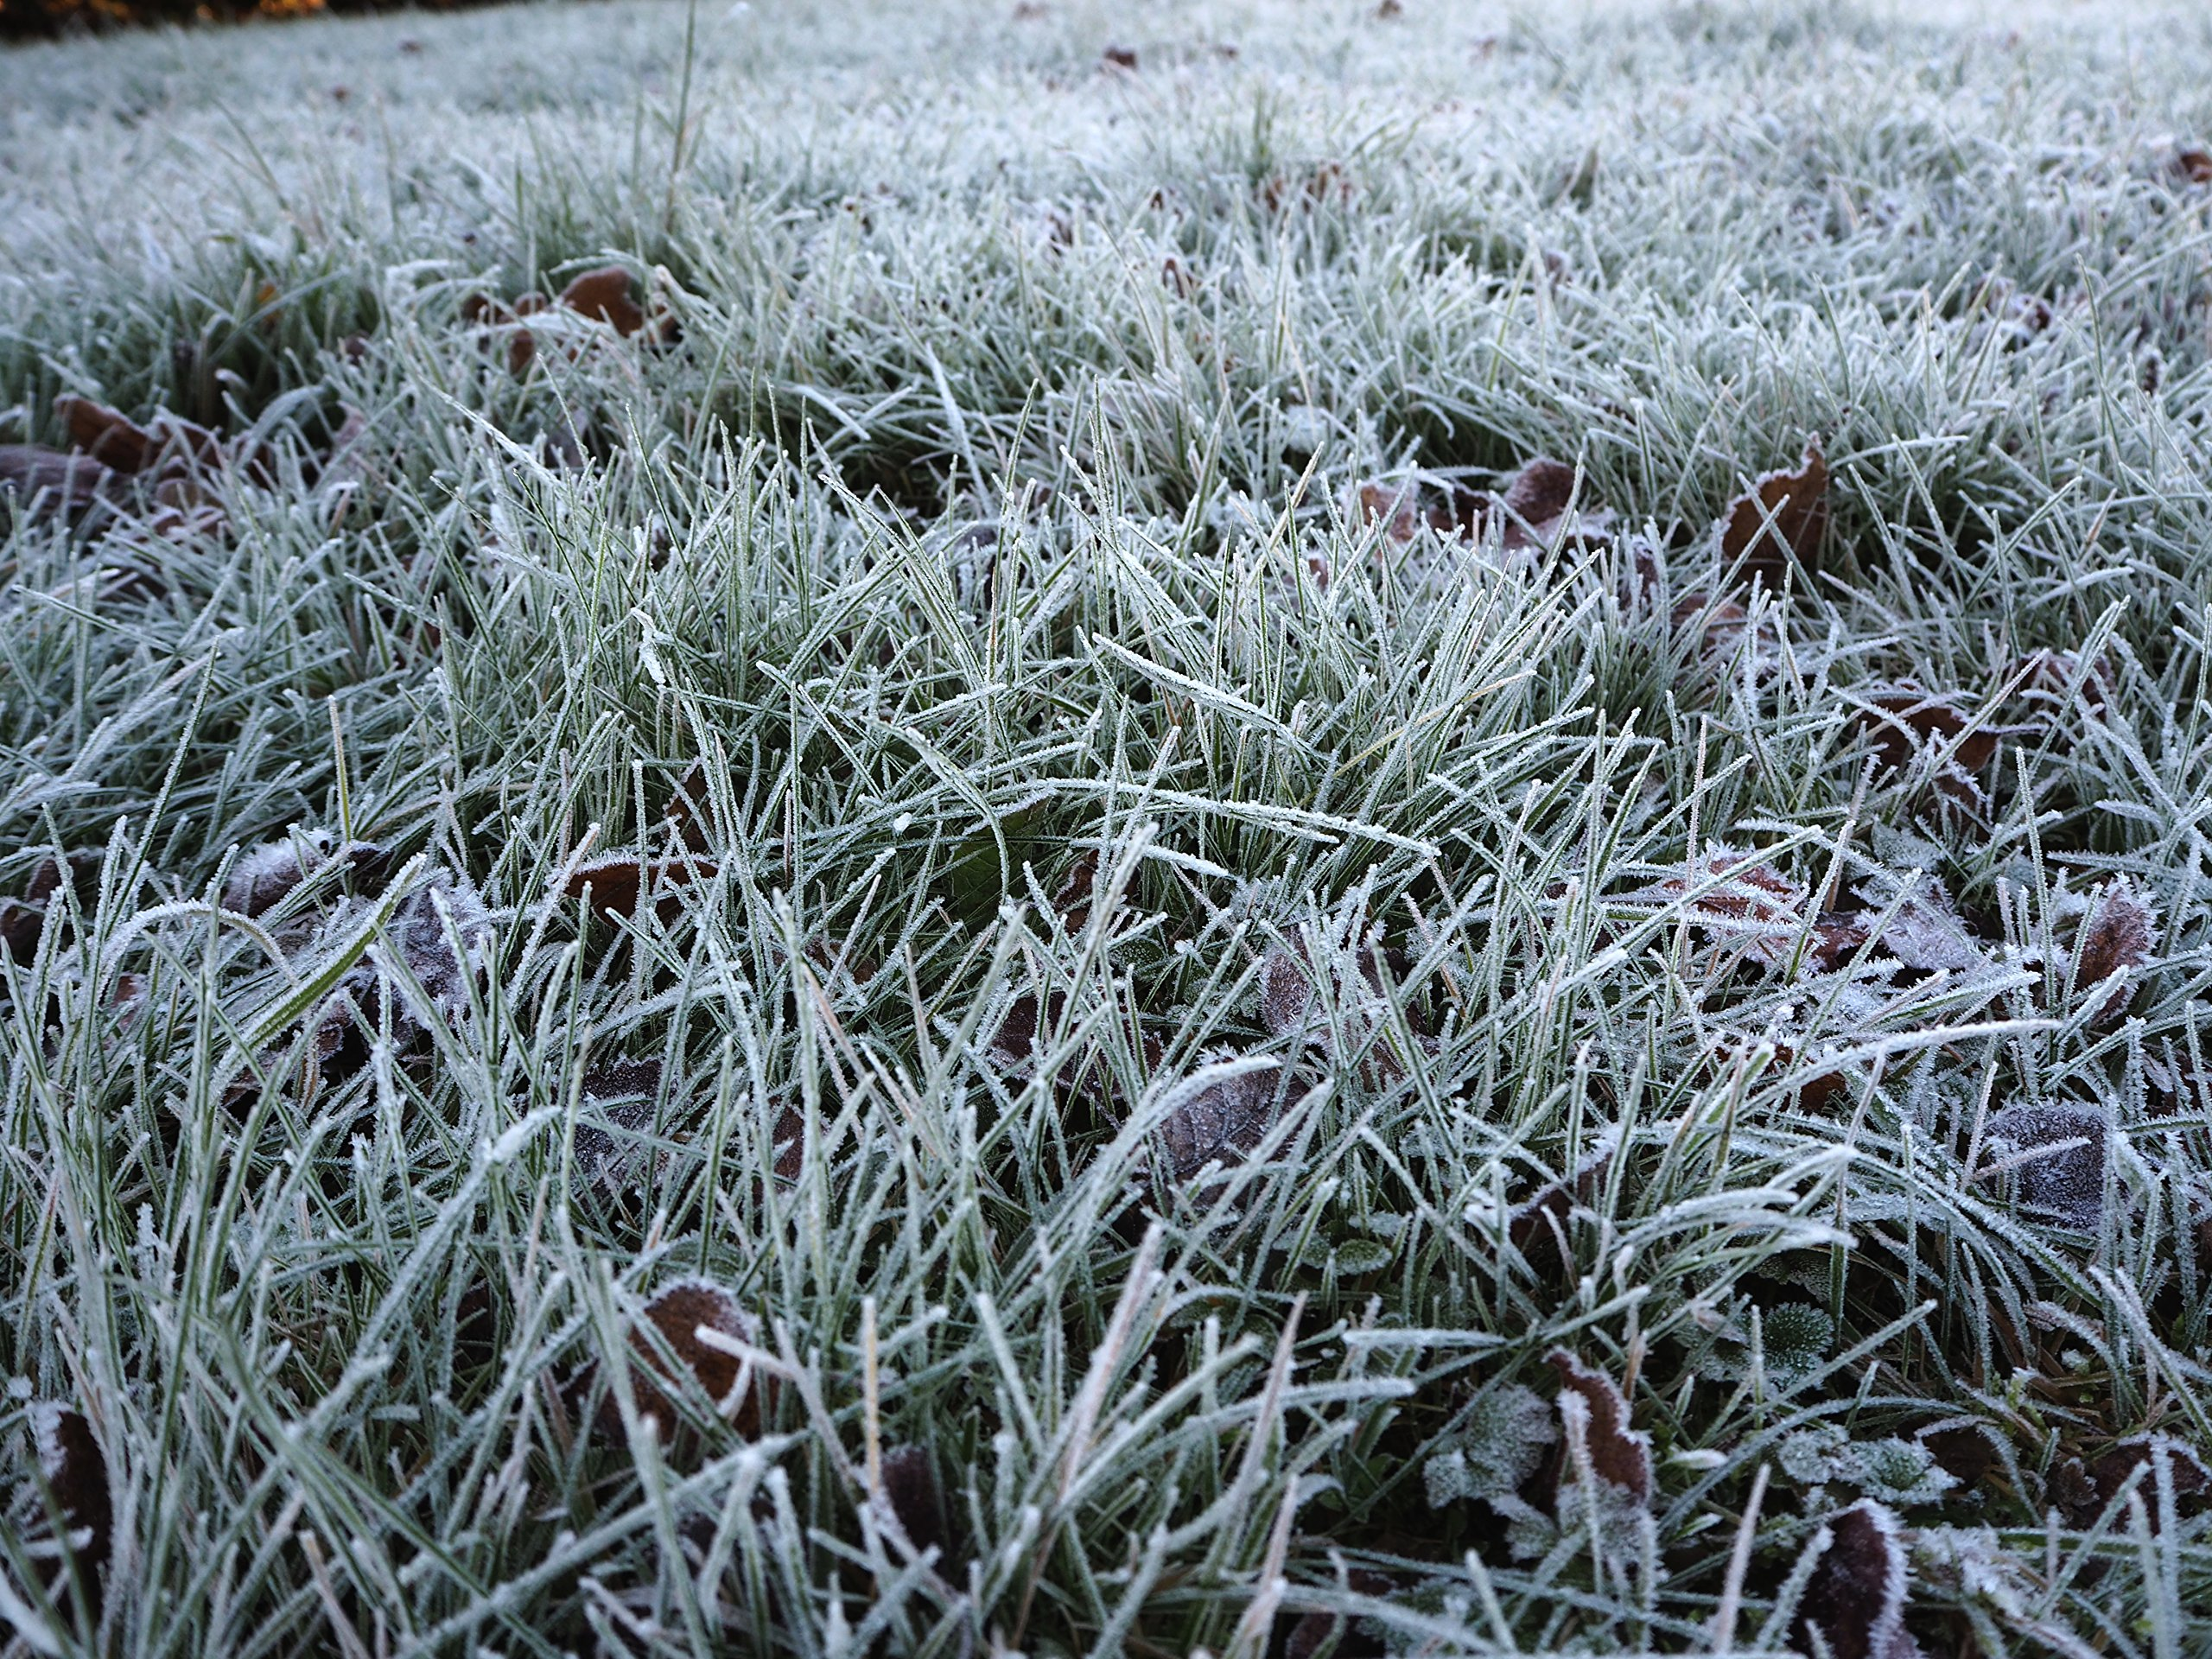 Snowy Frosted Grass